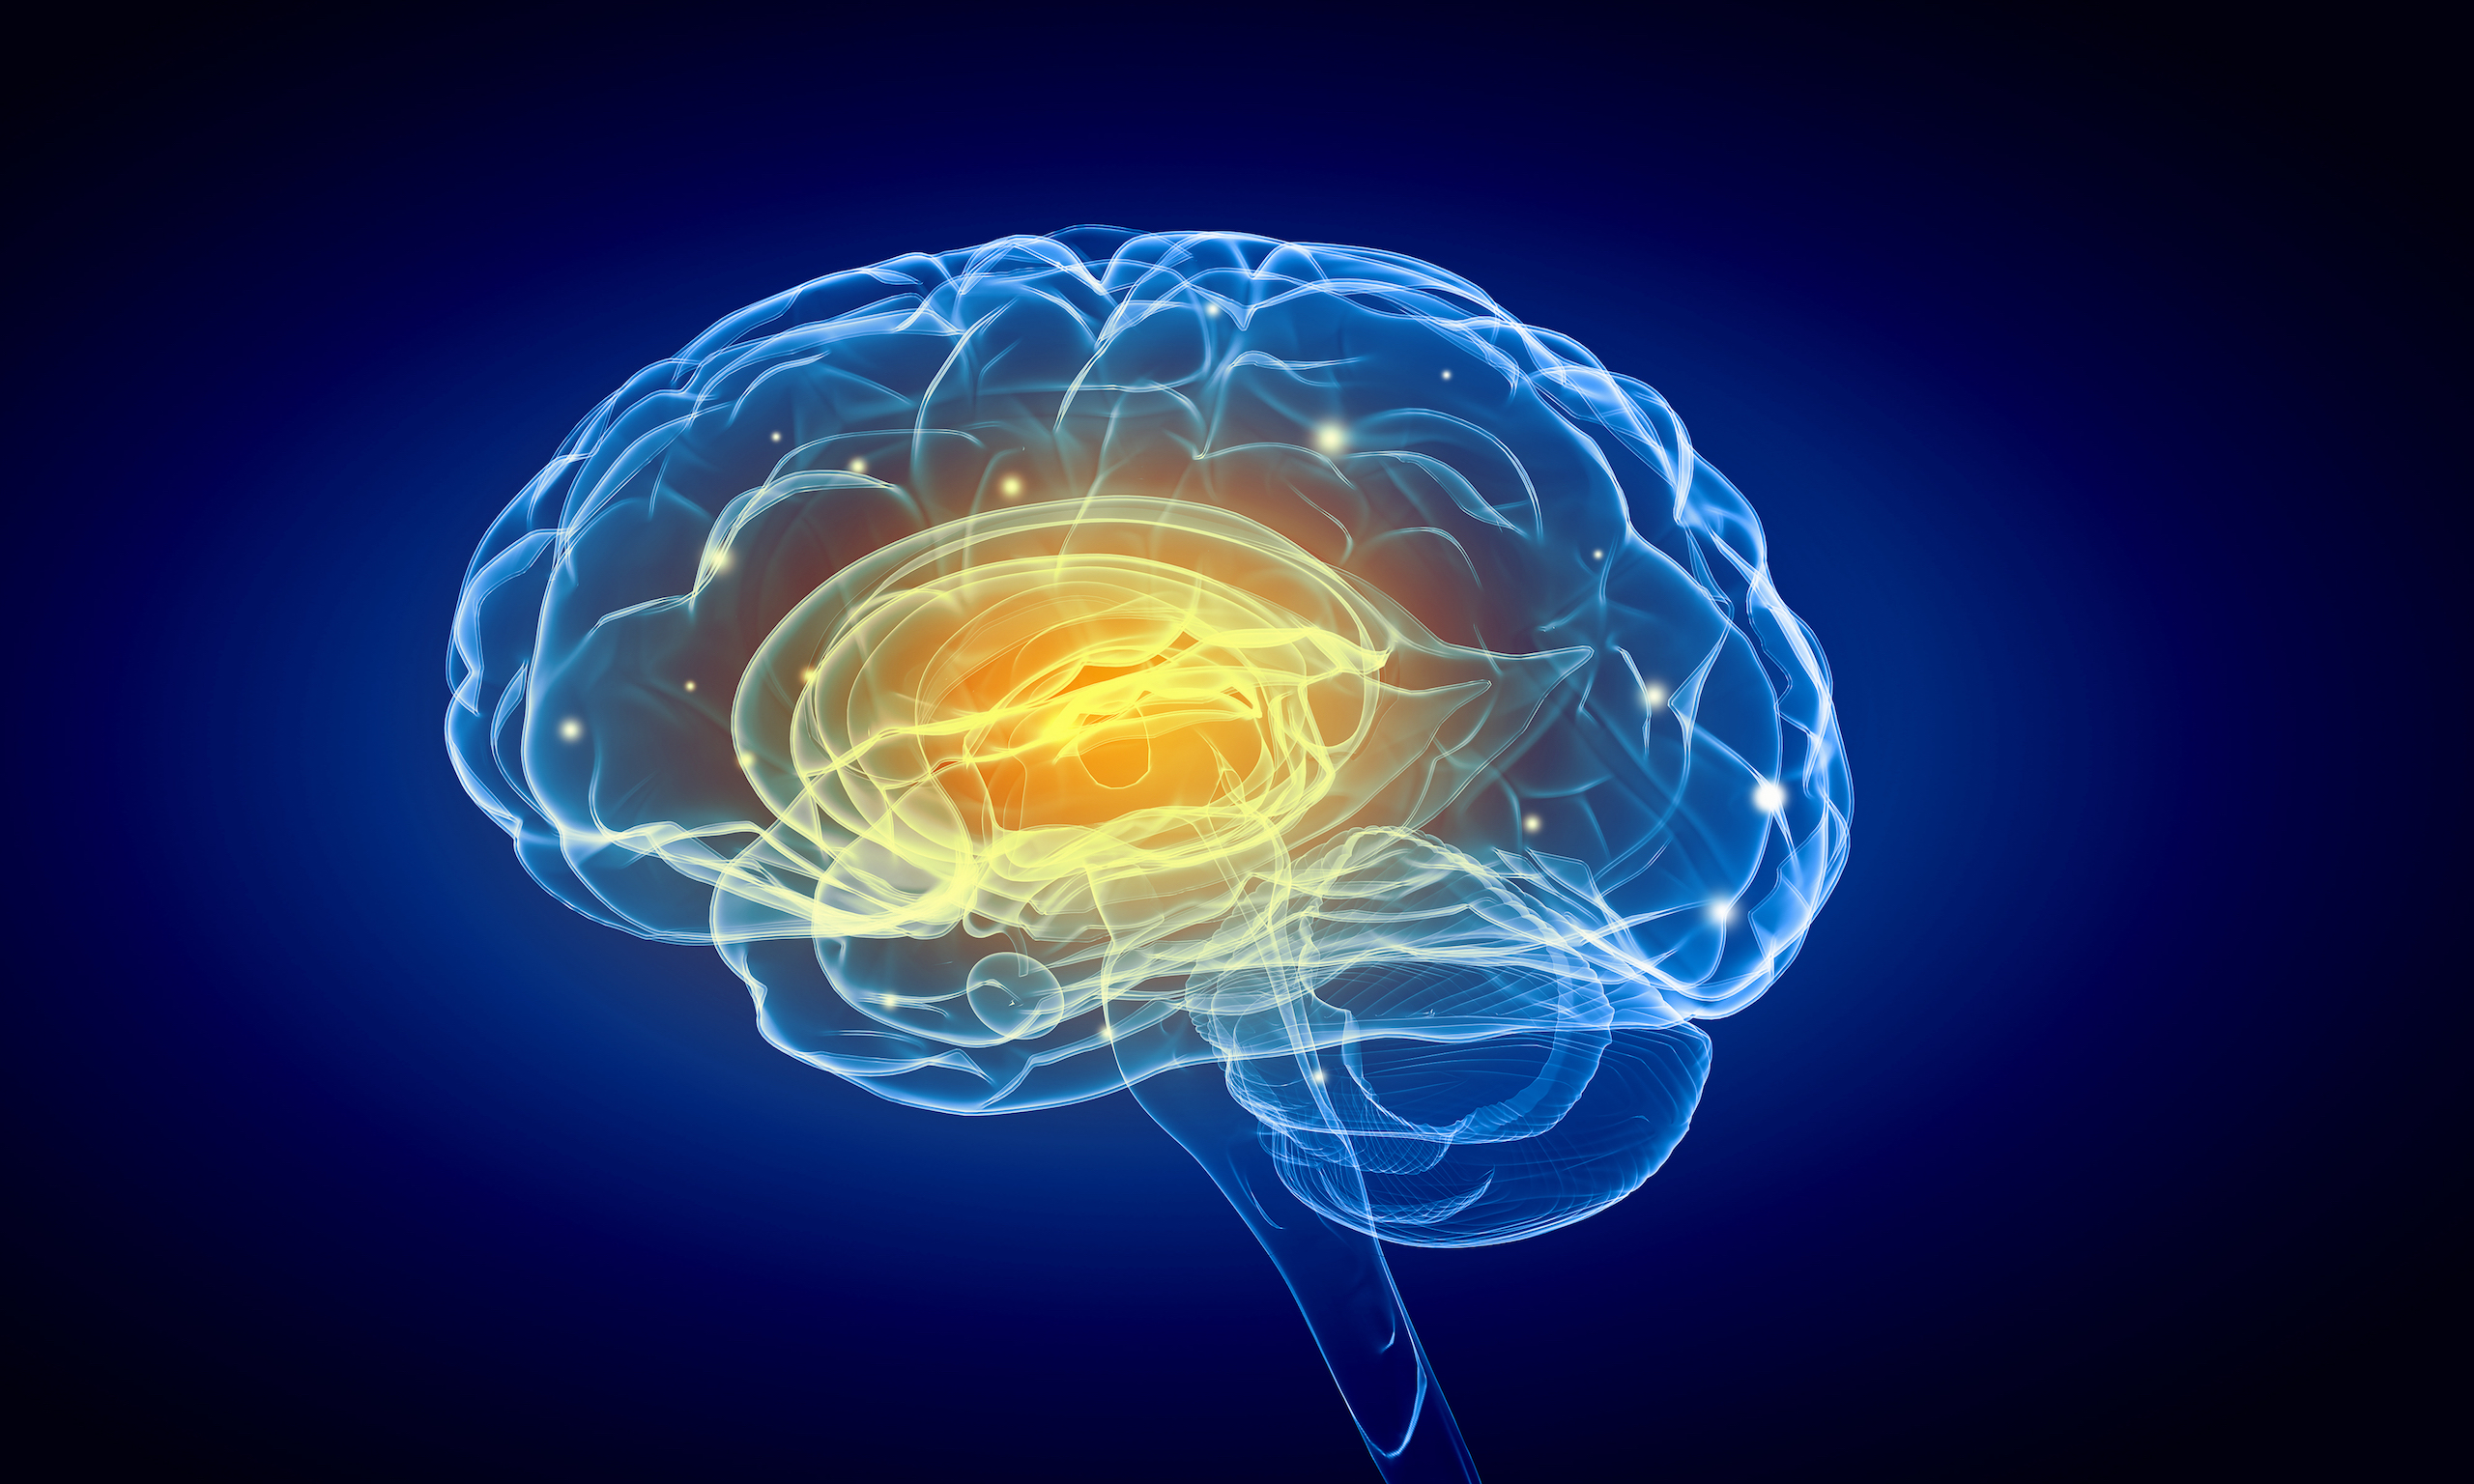 In a new study, scientists found that the brains of those who are born blind are able to make new connections due to their lack of visual information.